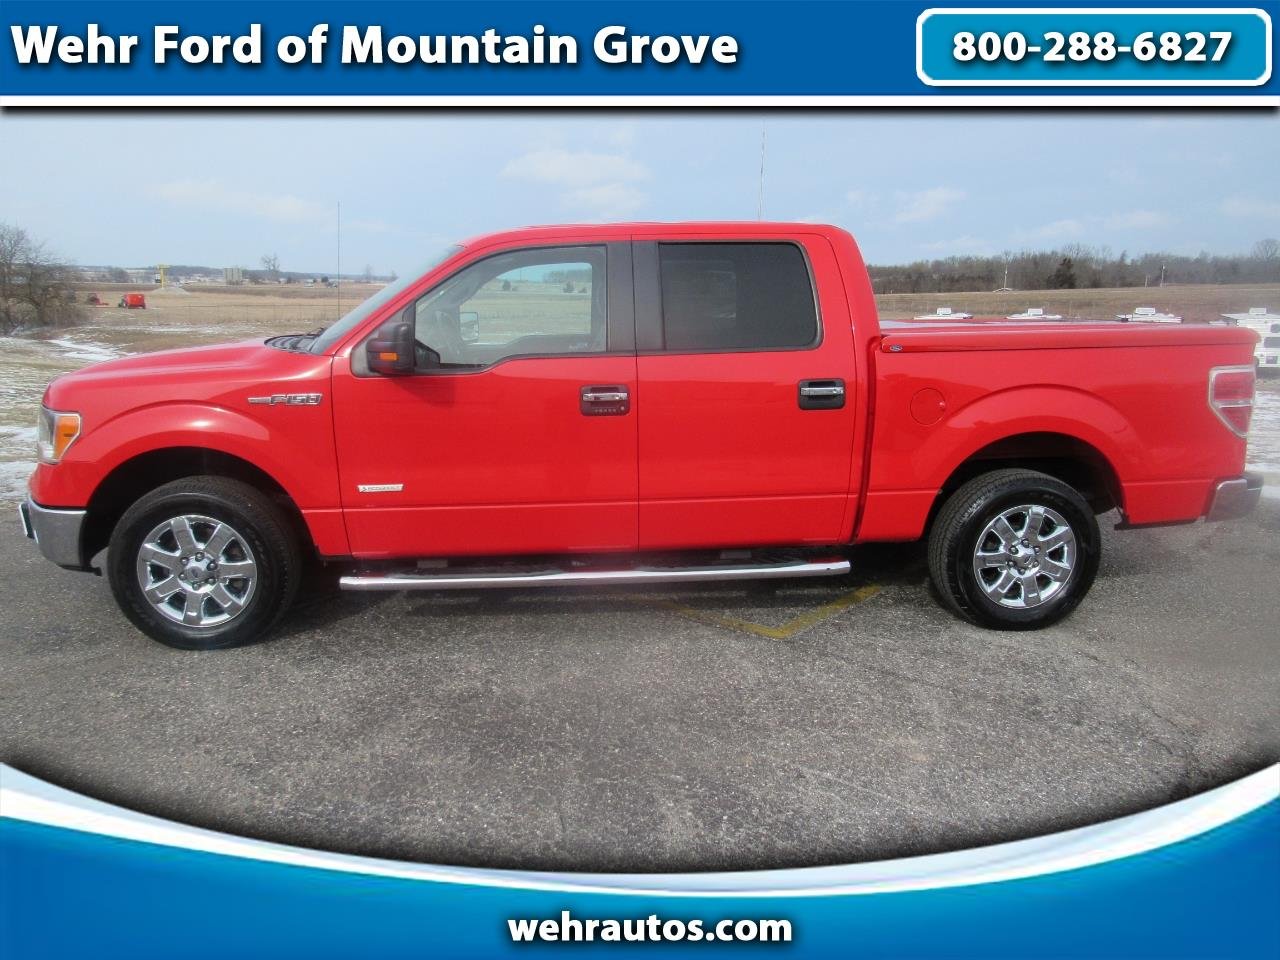 2014 Ford F-150 2WD Super Crew XLT